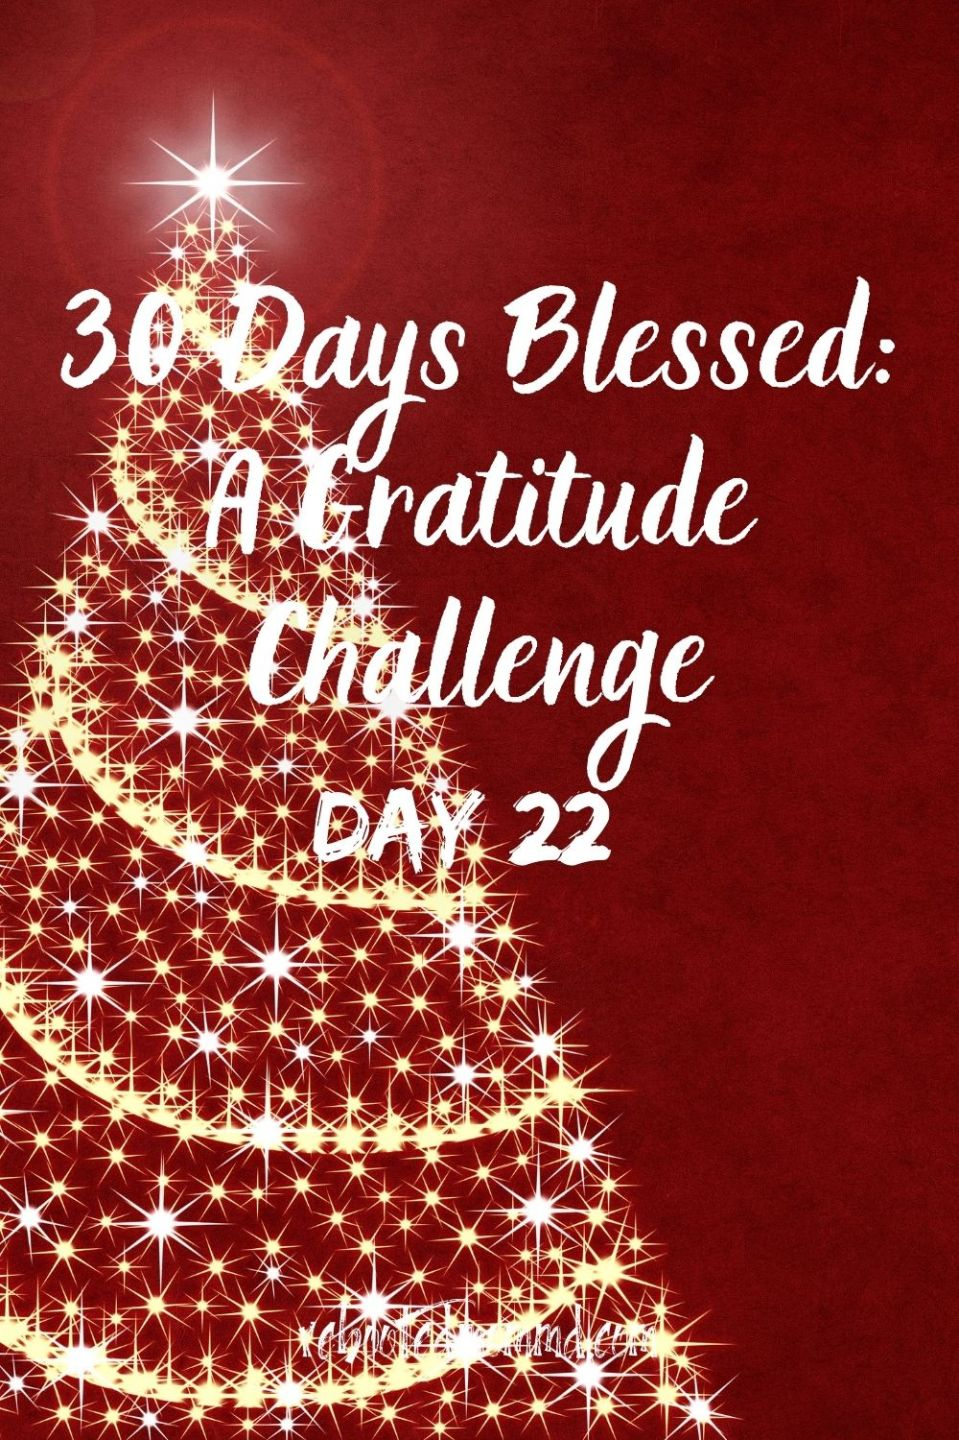 Day 22. Be Thankful for Friends Near and Far